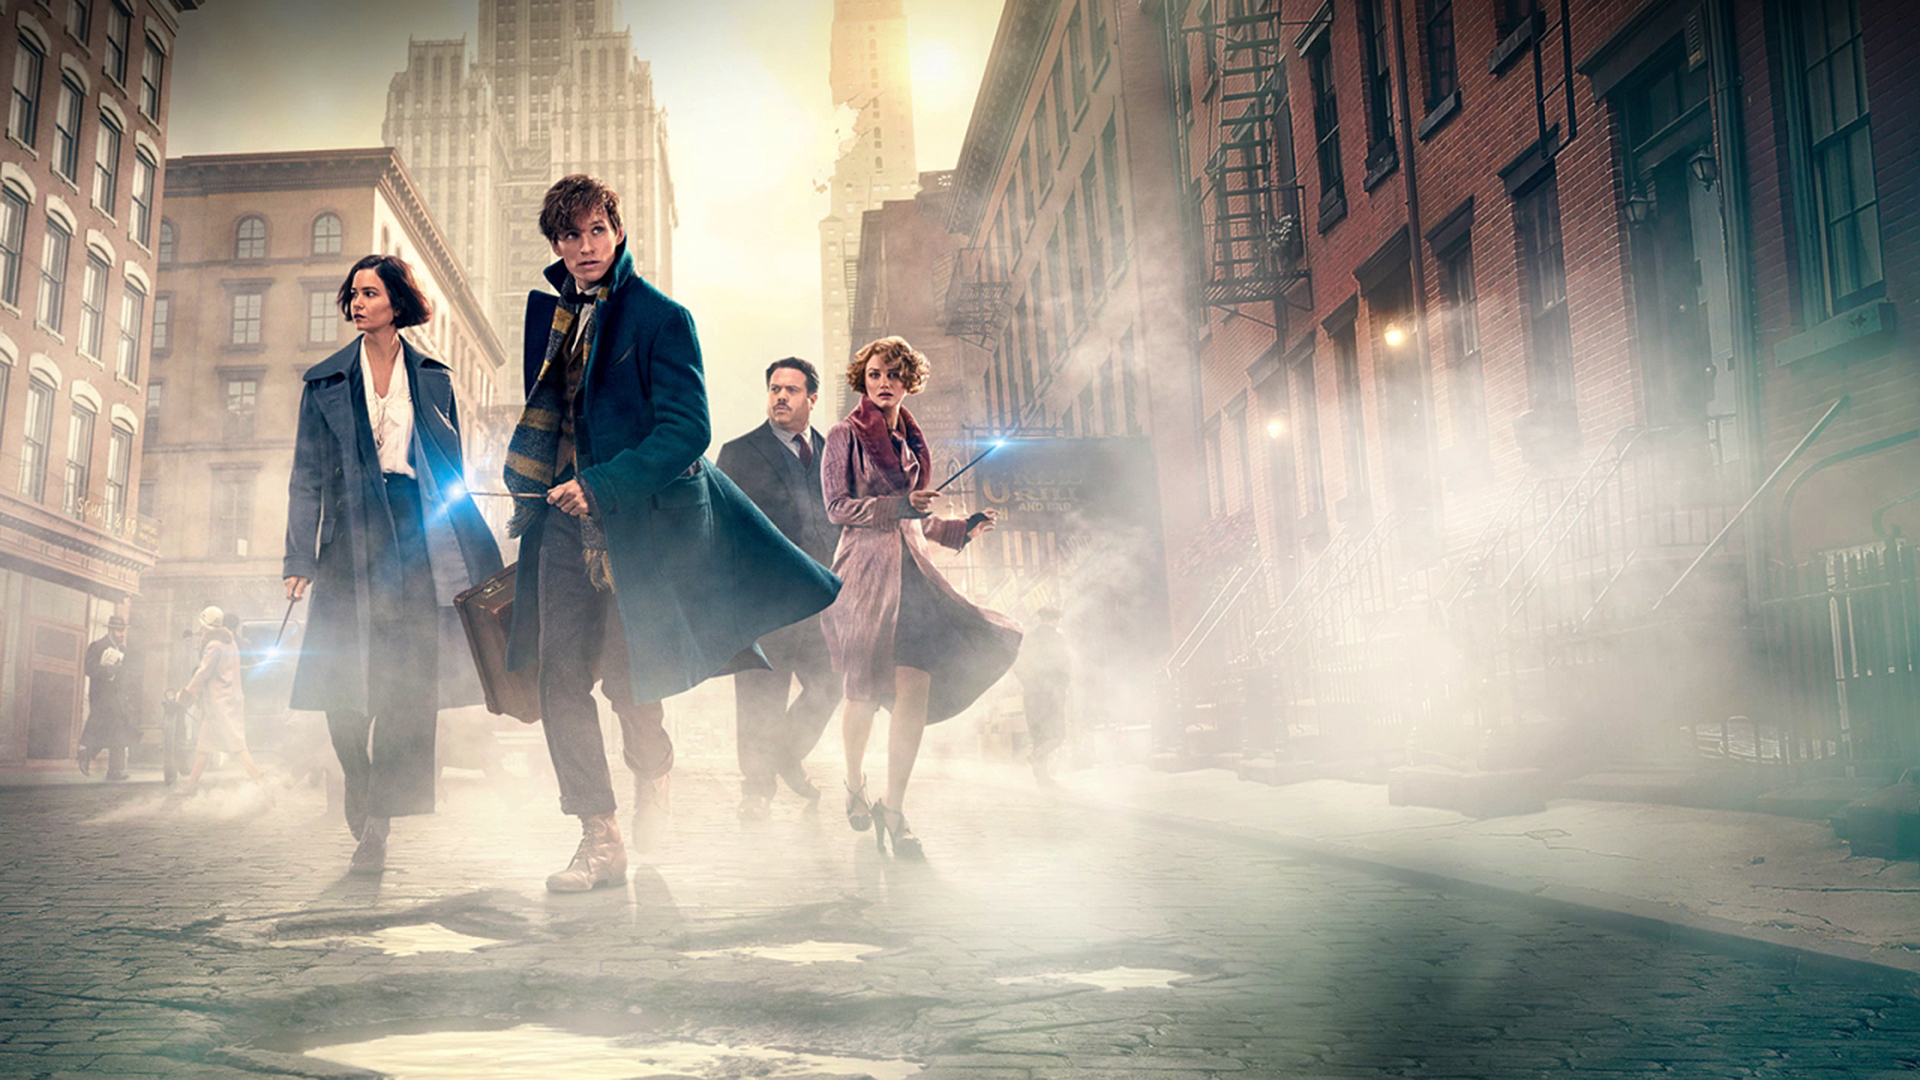 Fantastic Beasts and Where to Find Them images Fantastic Beasts 1920x1080